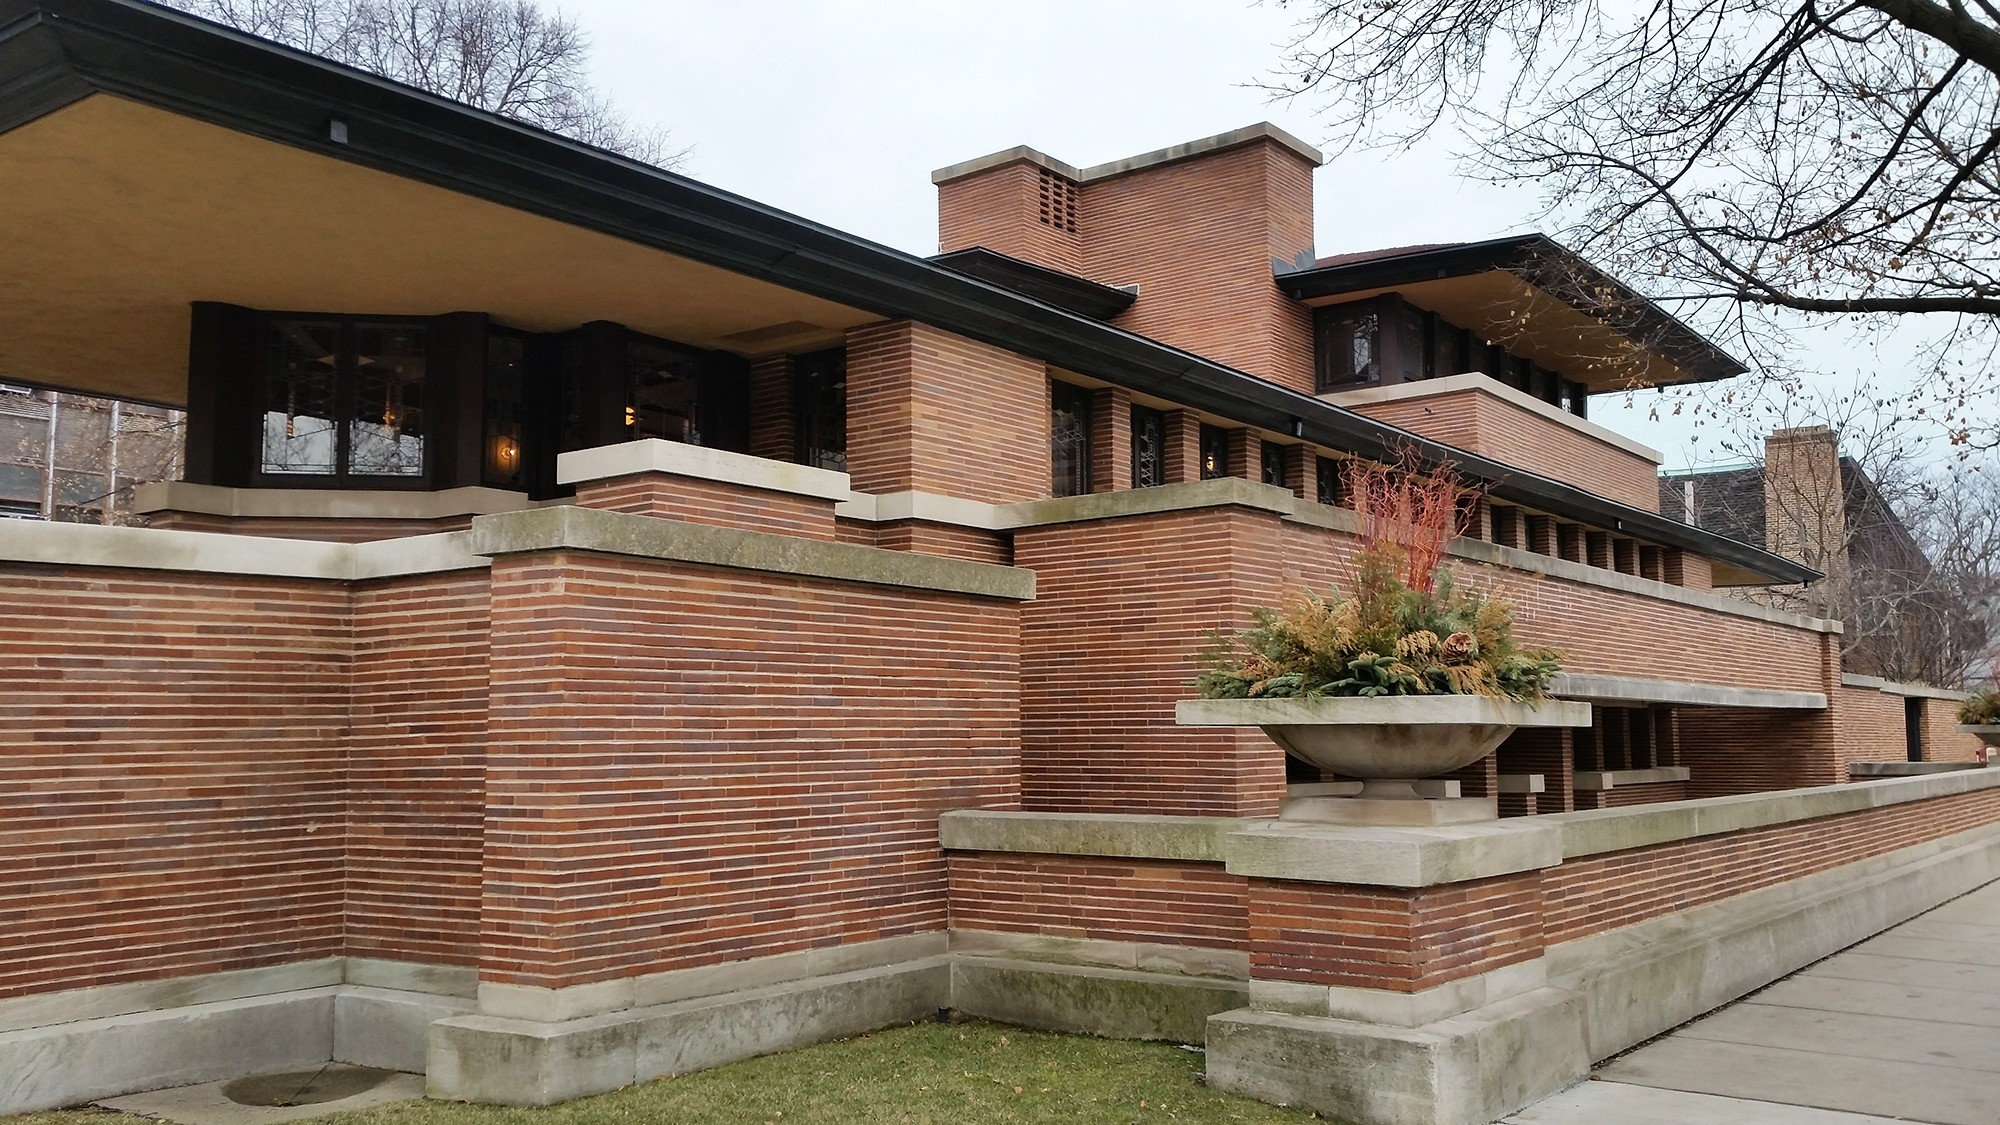 Robie House - Exterior Source: openhousechicago.org